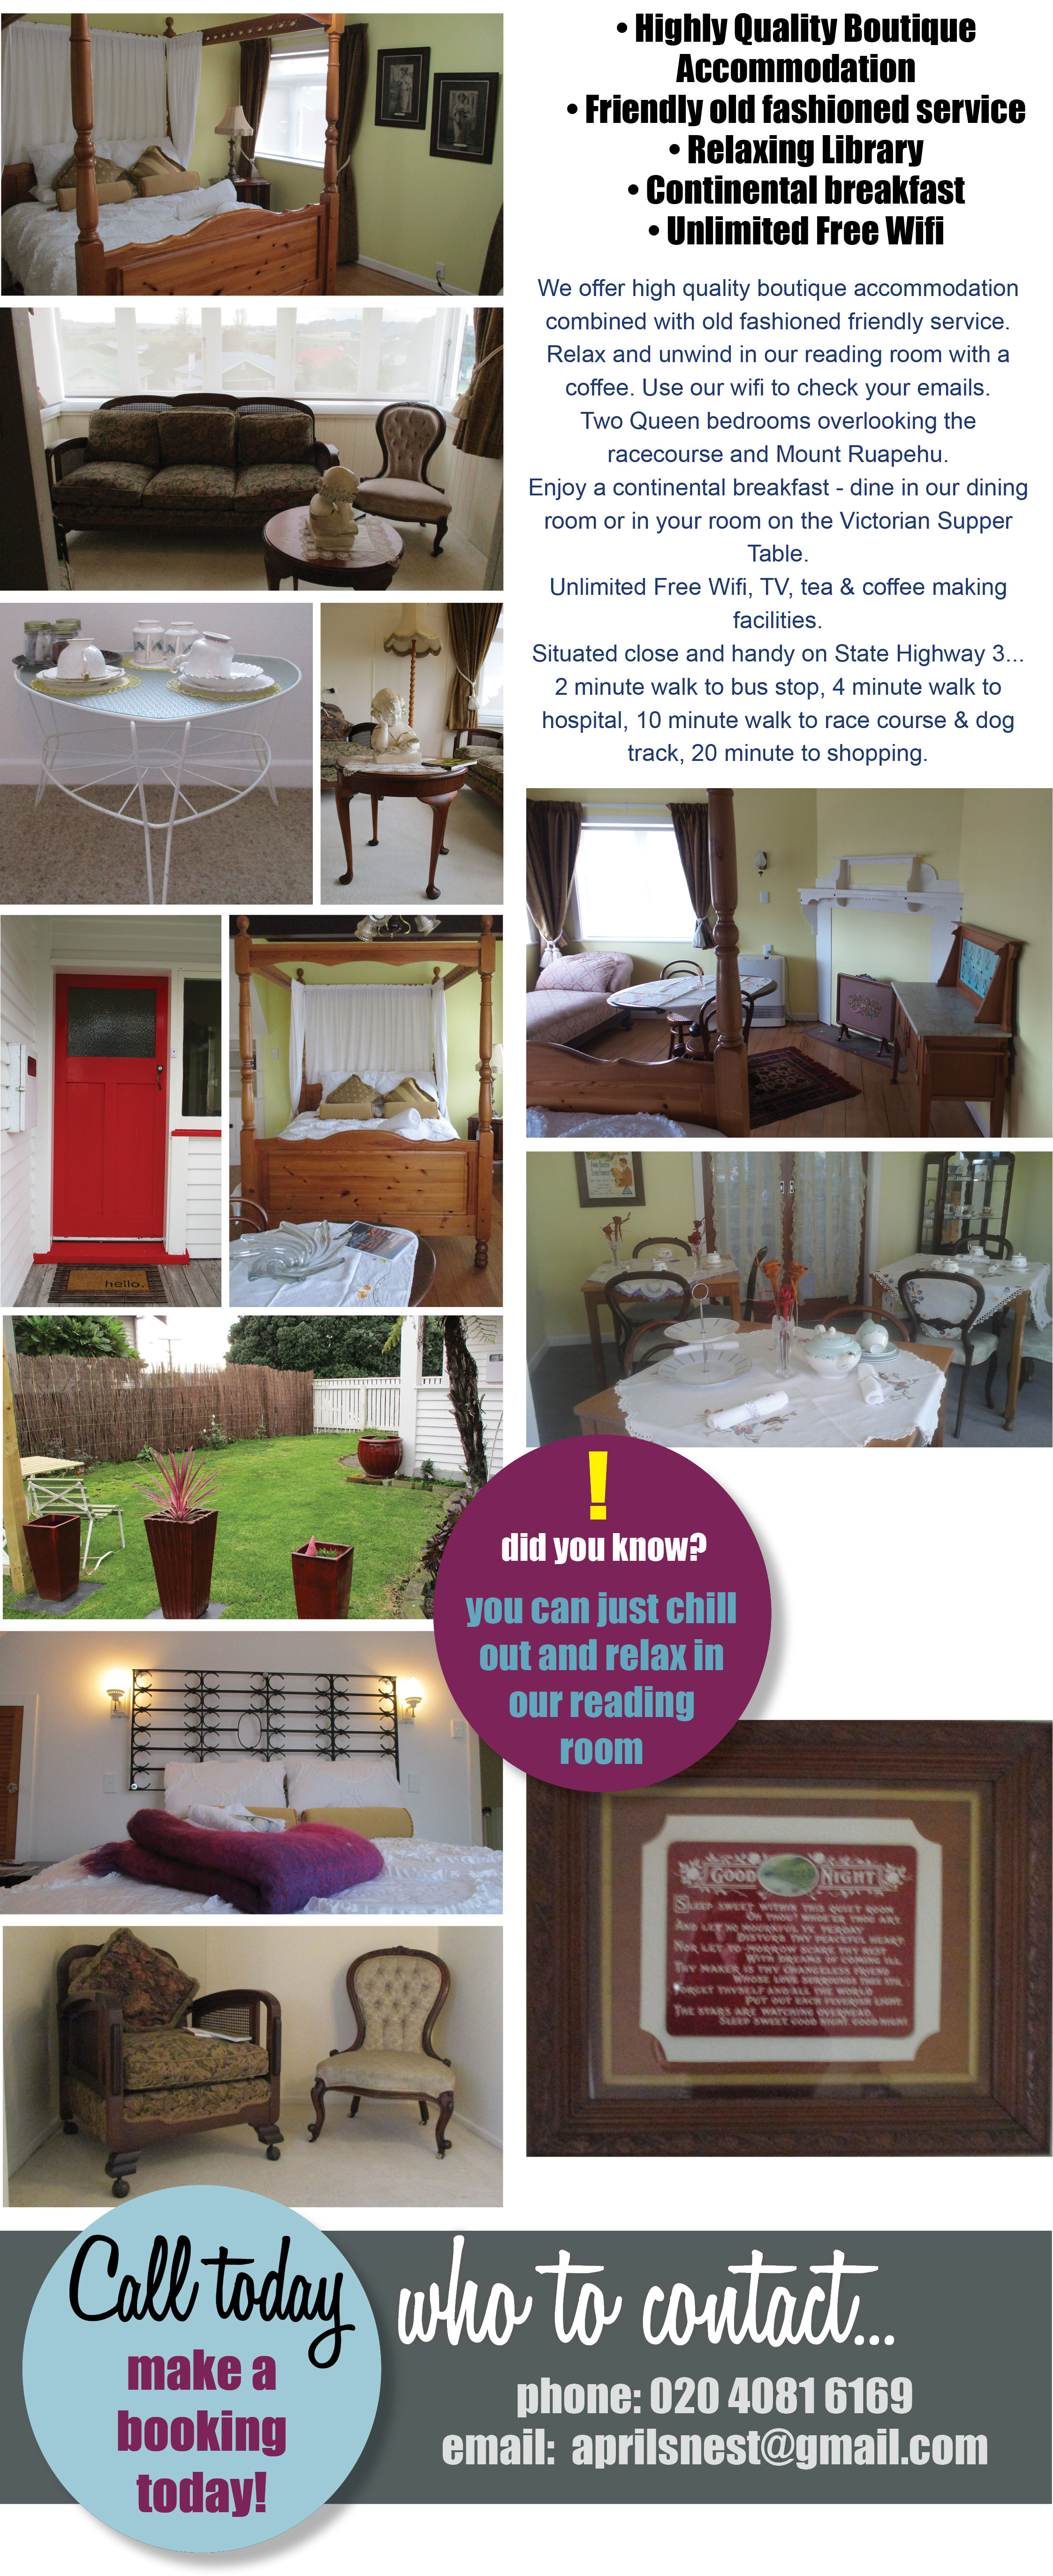 Highly Quality Boutique Accommodation, Friendly old fashioned service, Relaxing Library, Hot cooked breakfast, Free Wifi, Aprils Nest, B&B Wanganui. Wanganui B&B